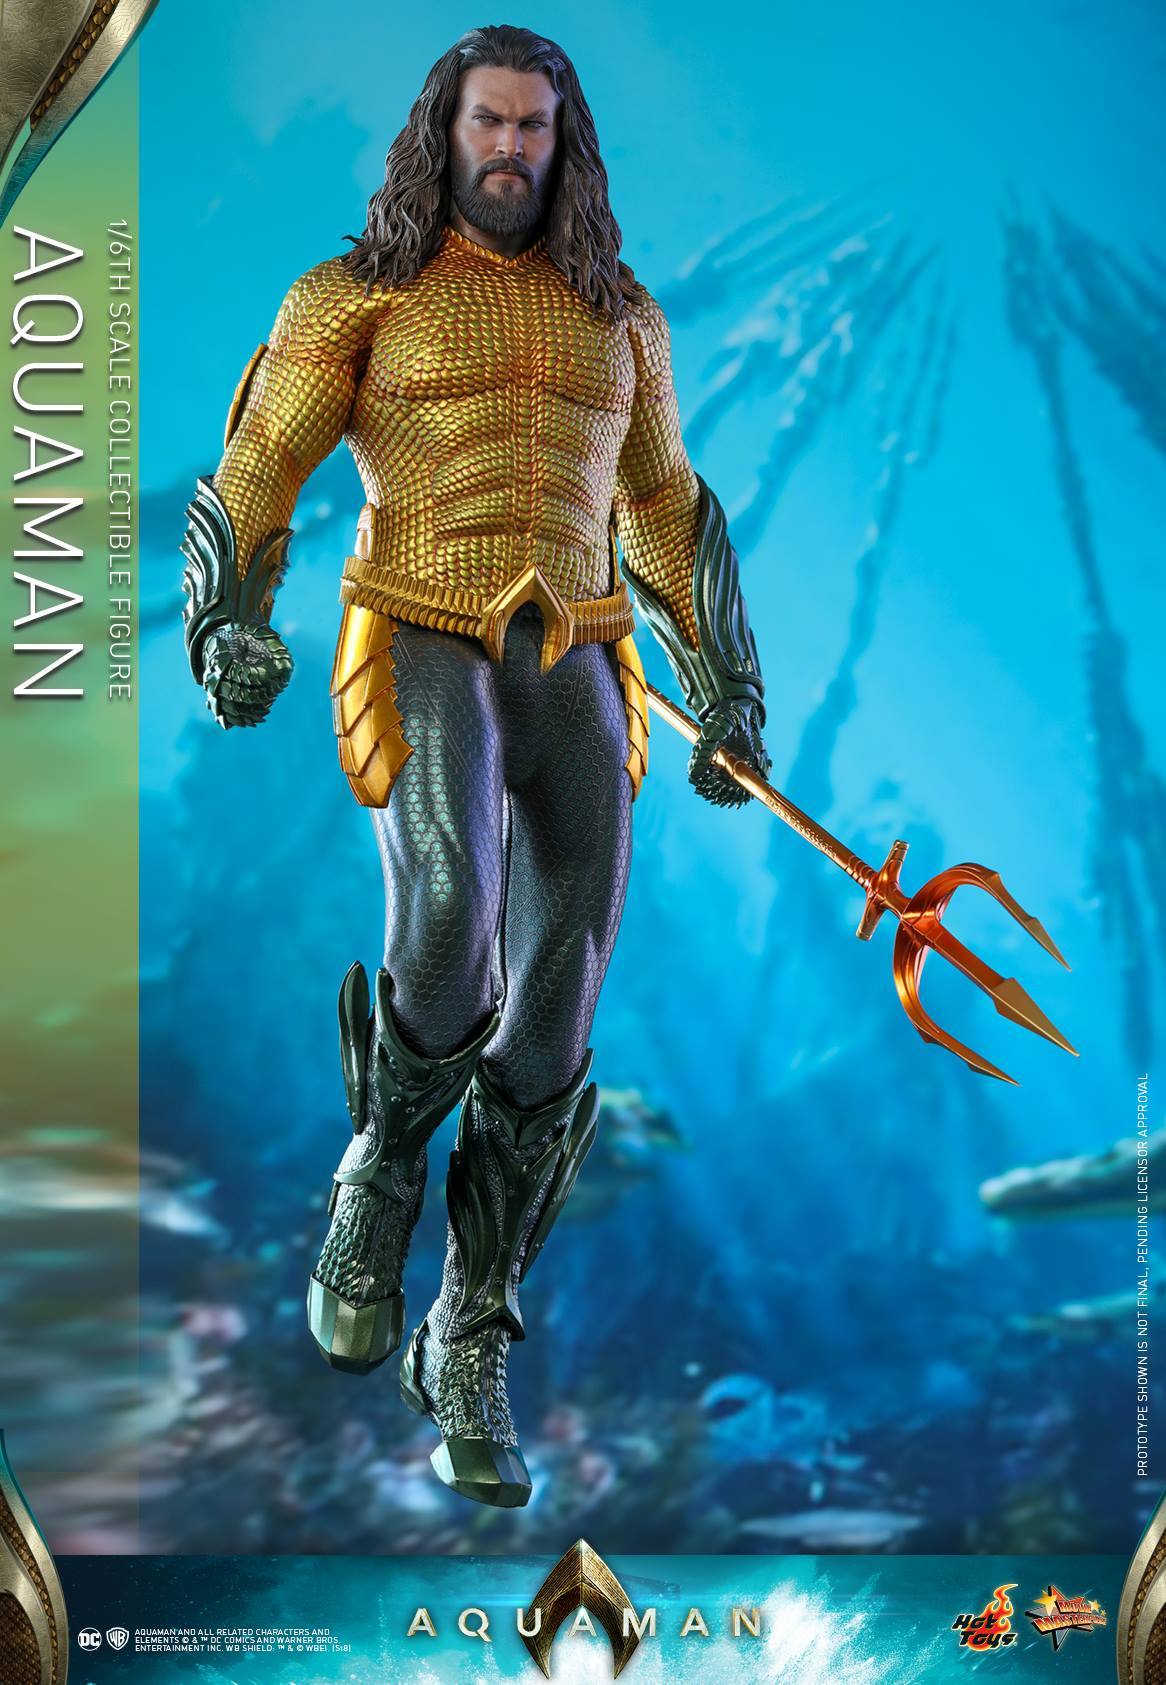 Pre-Order Hot Toys DC Comics Aquaman Movie Sixth Scale Figure